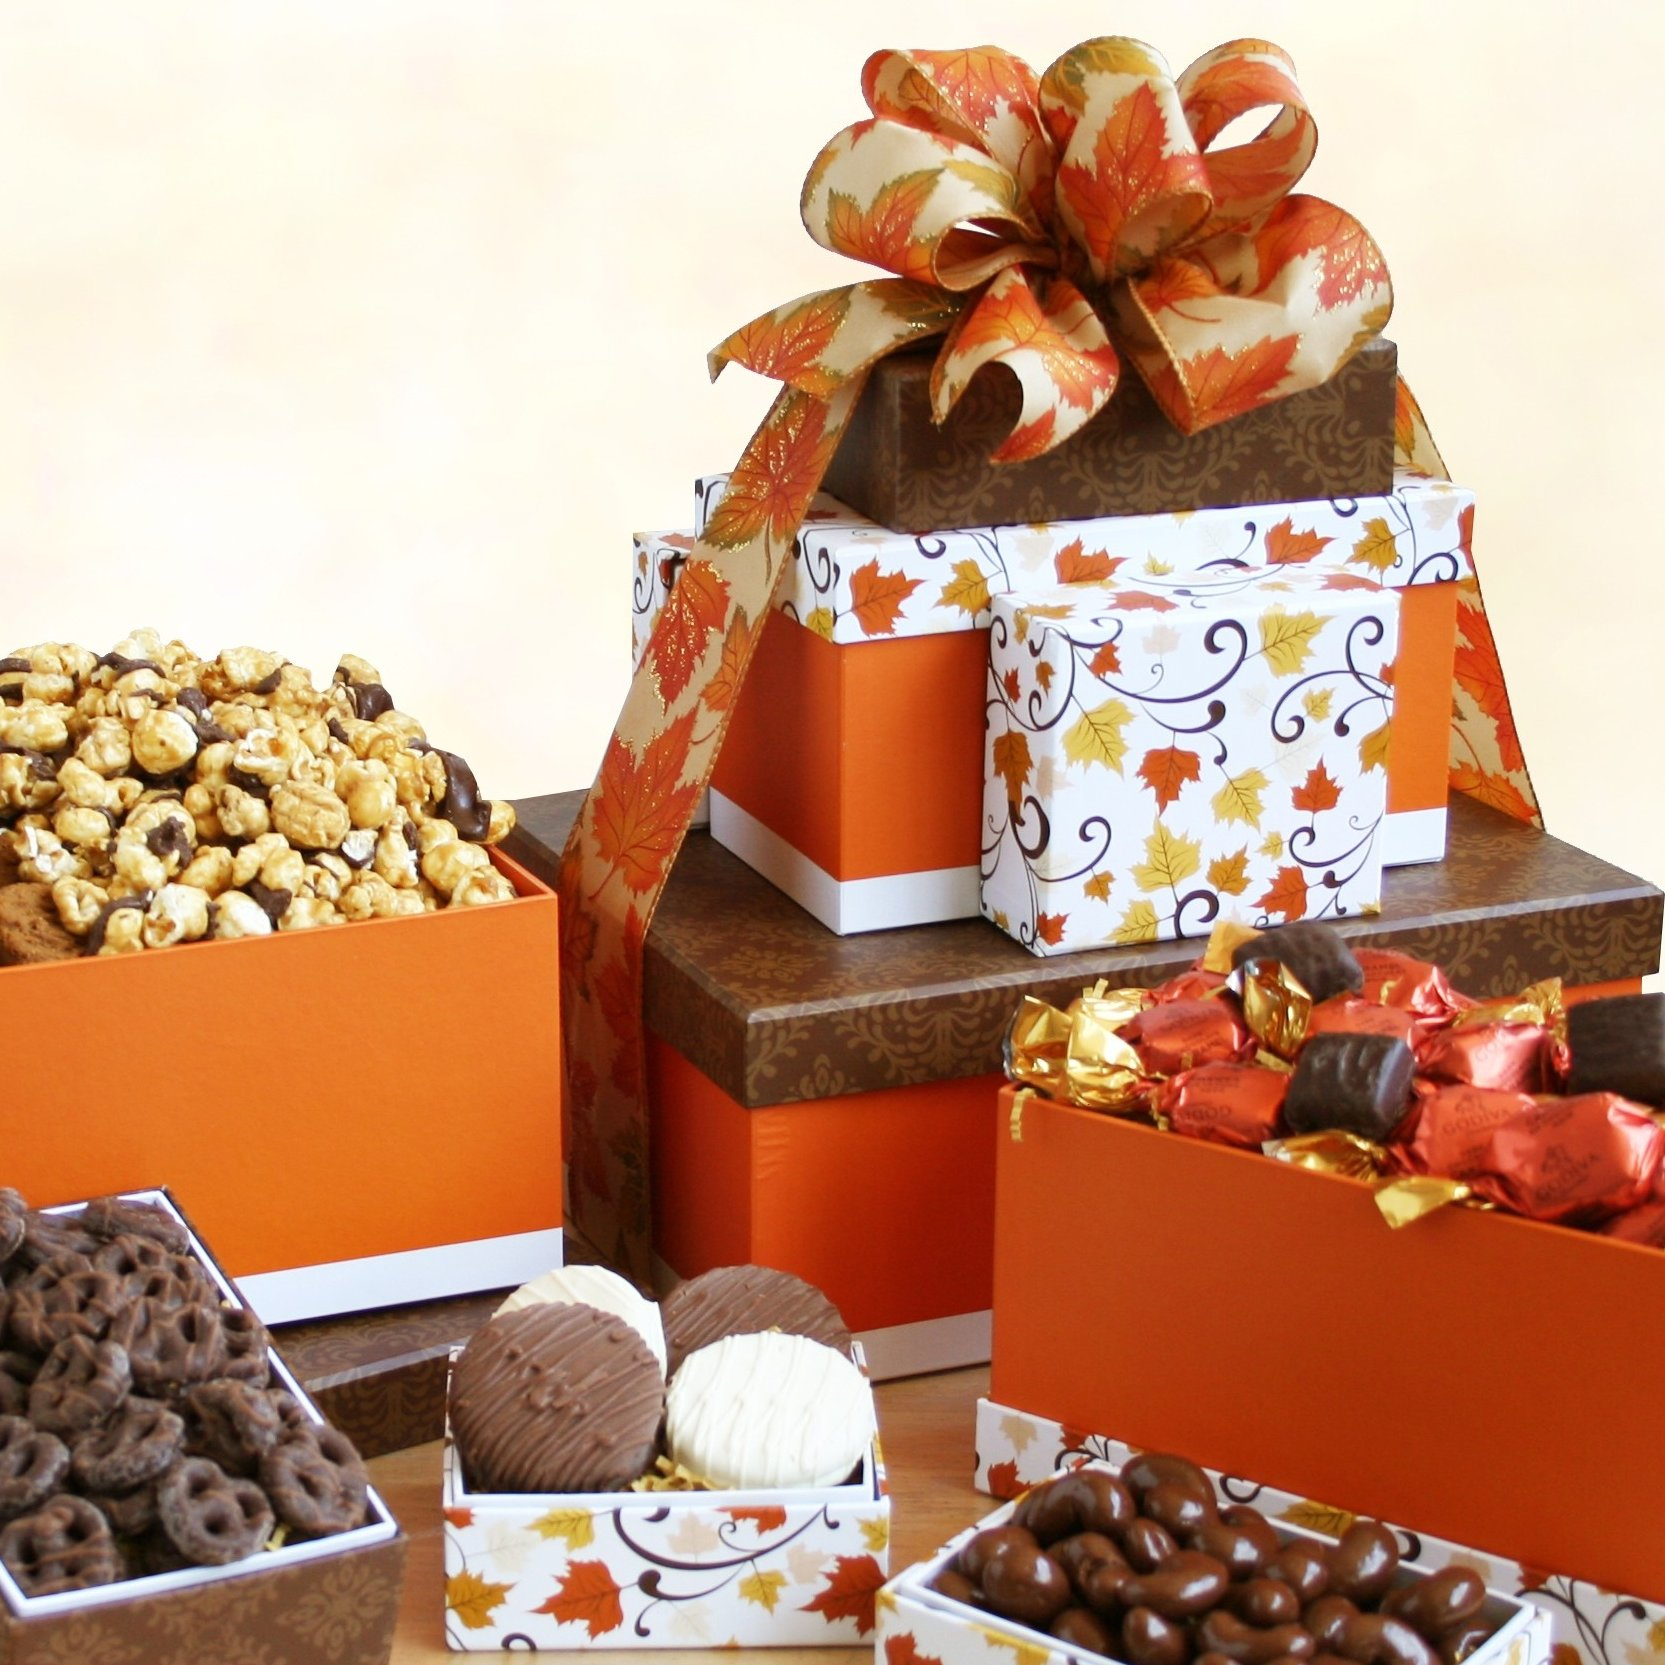 Image 0 of Autumn Sweets: Gourmet Gift Tower